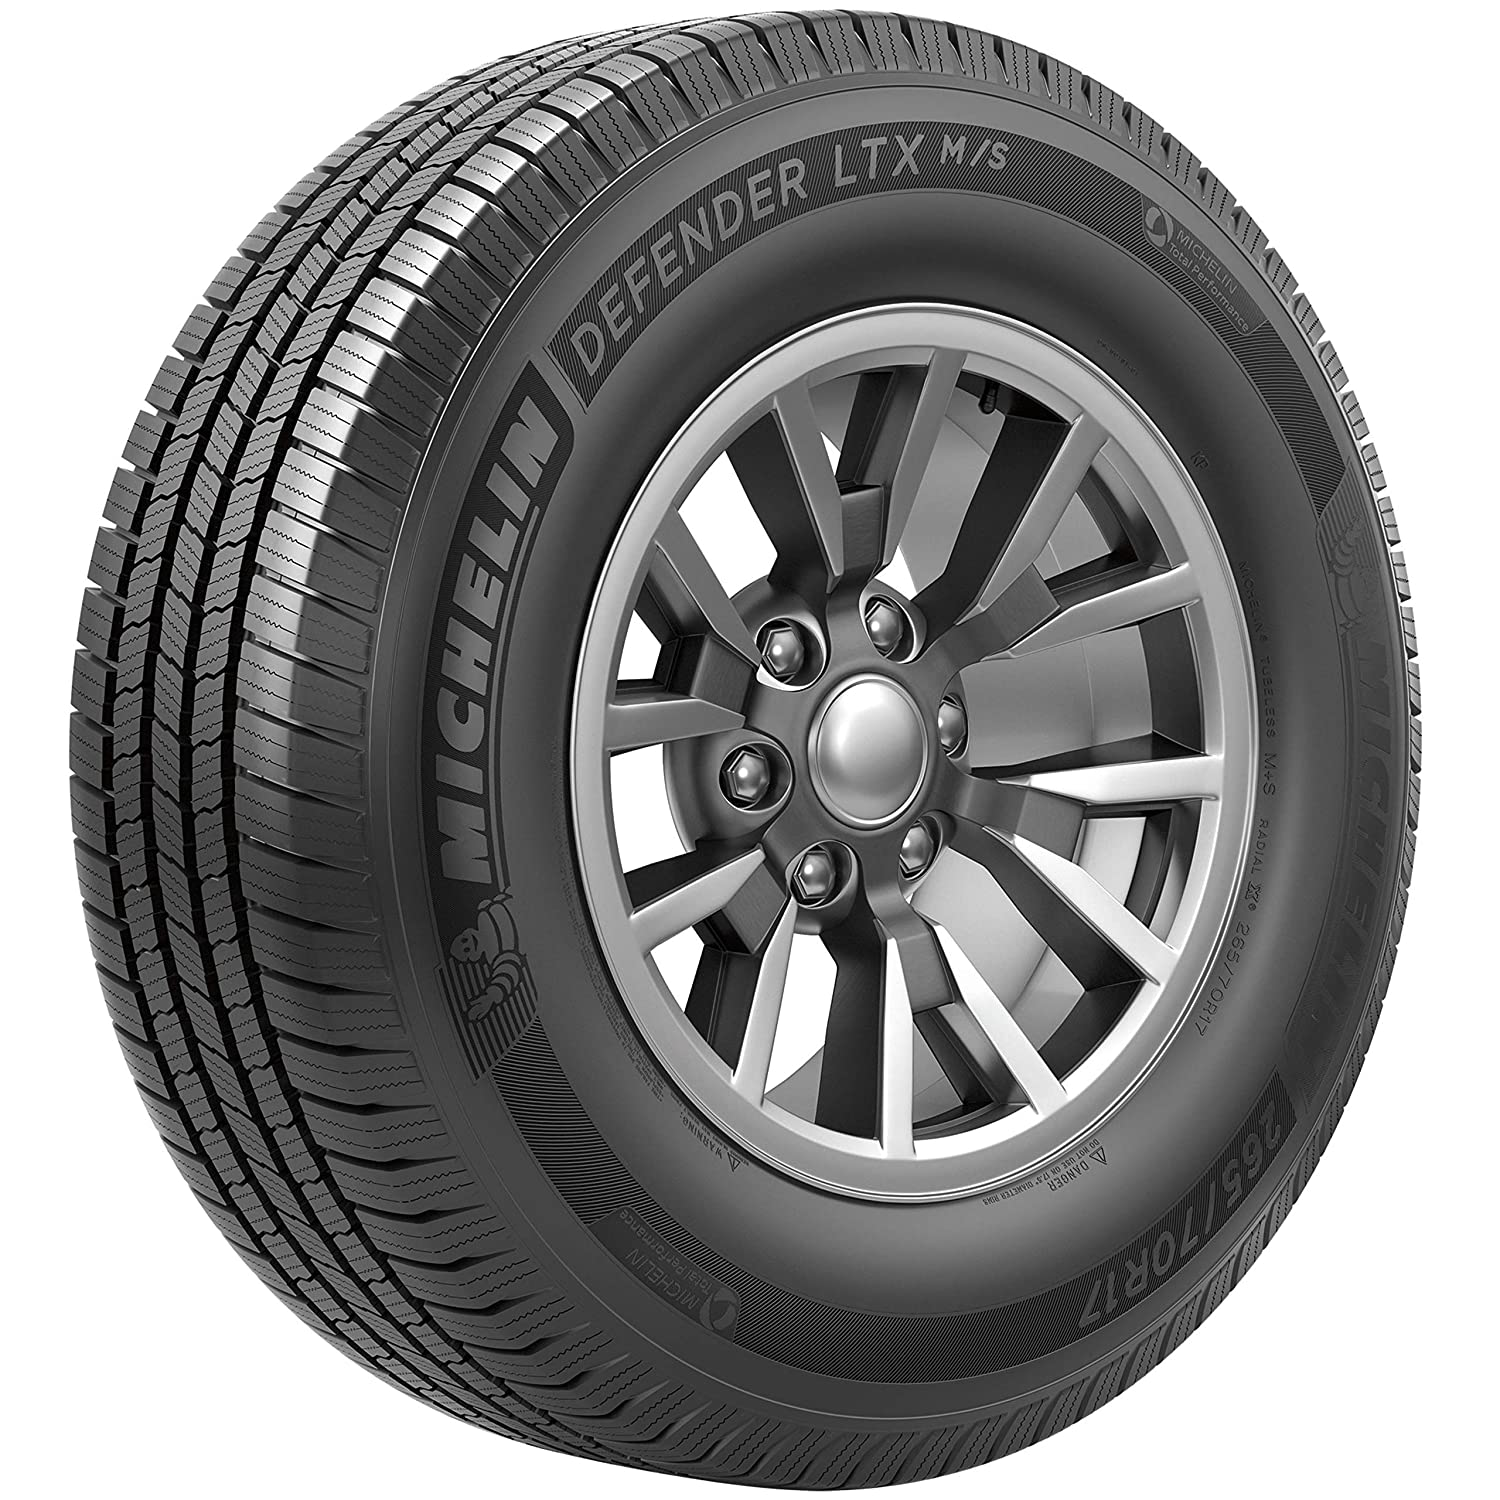 Michelin Defender Reviews >> Michelin Defender Ltx M S All Season Radial Tire 285 45r22 110h